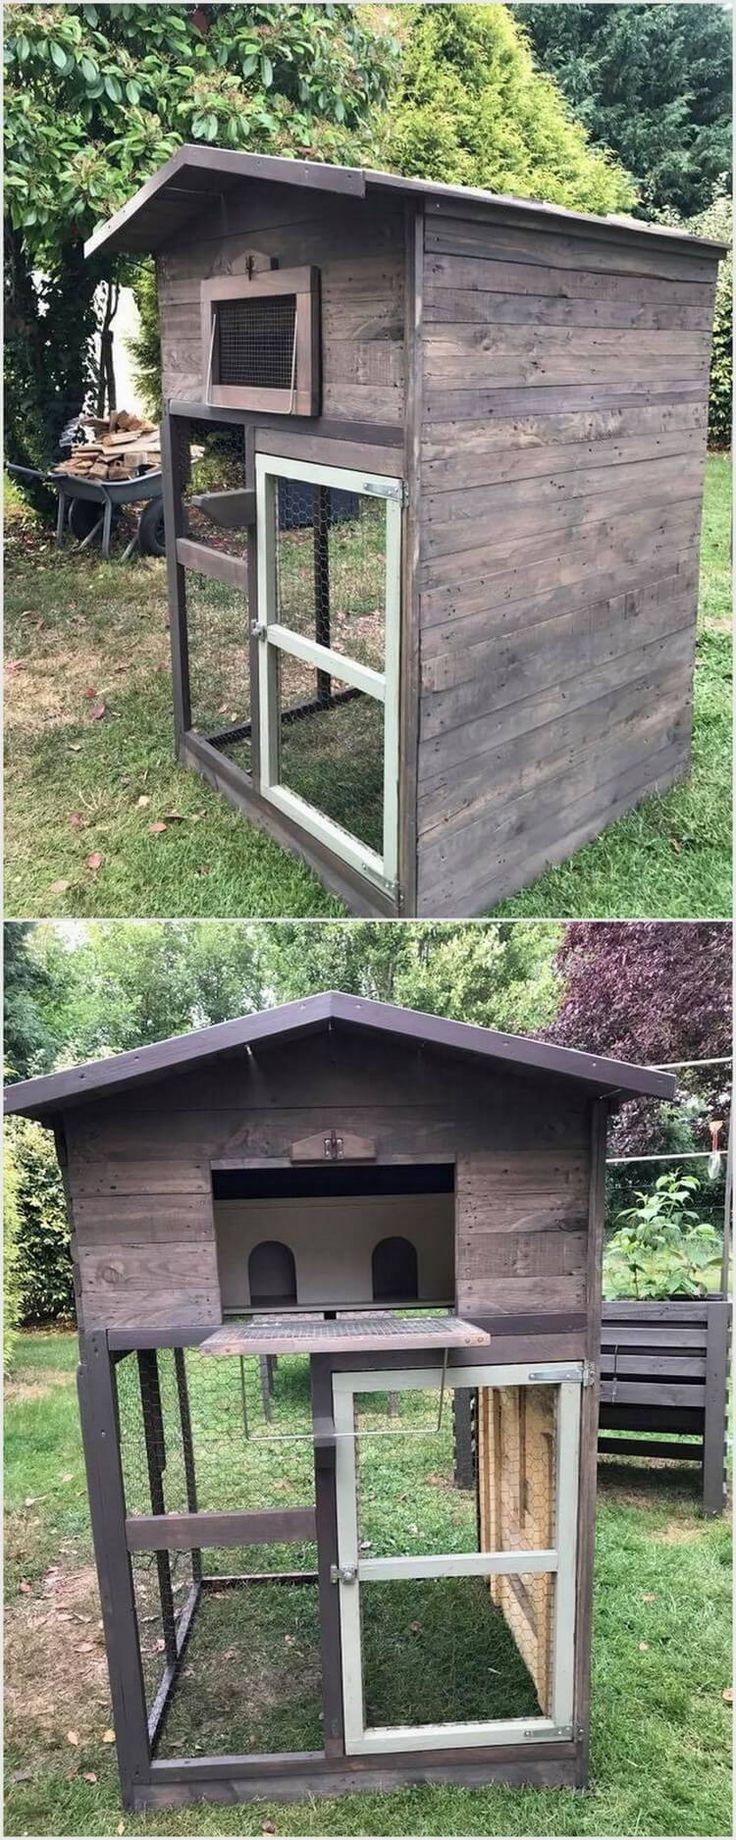 You can even perfectly make the use of designing a simple pigeon house for your house corner. In order to design a simple looking pigeon house, you can even do it by arranging some old wood pallet material and cutting it down in the form style of the house or cage. Keep it simple and less furnished!